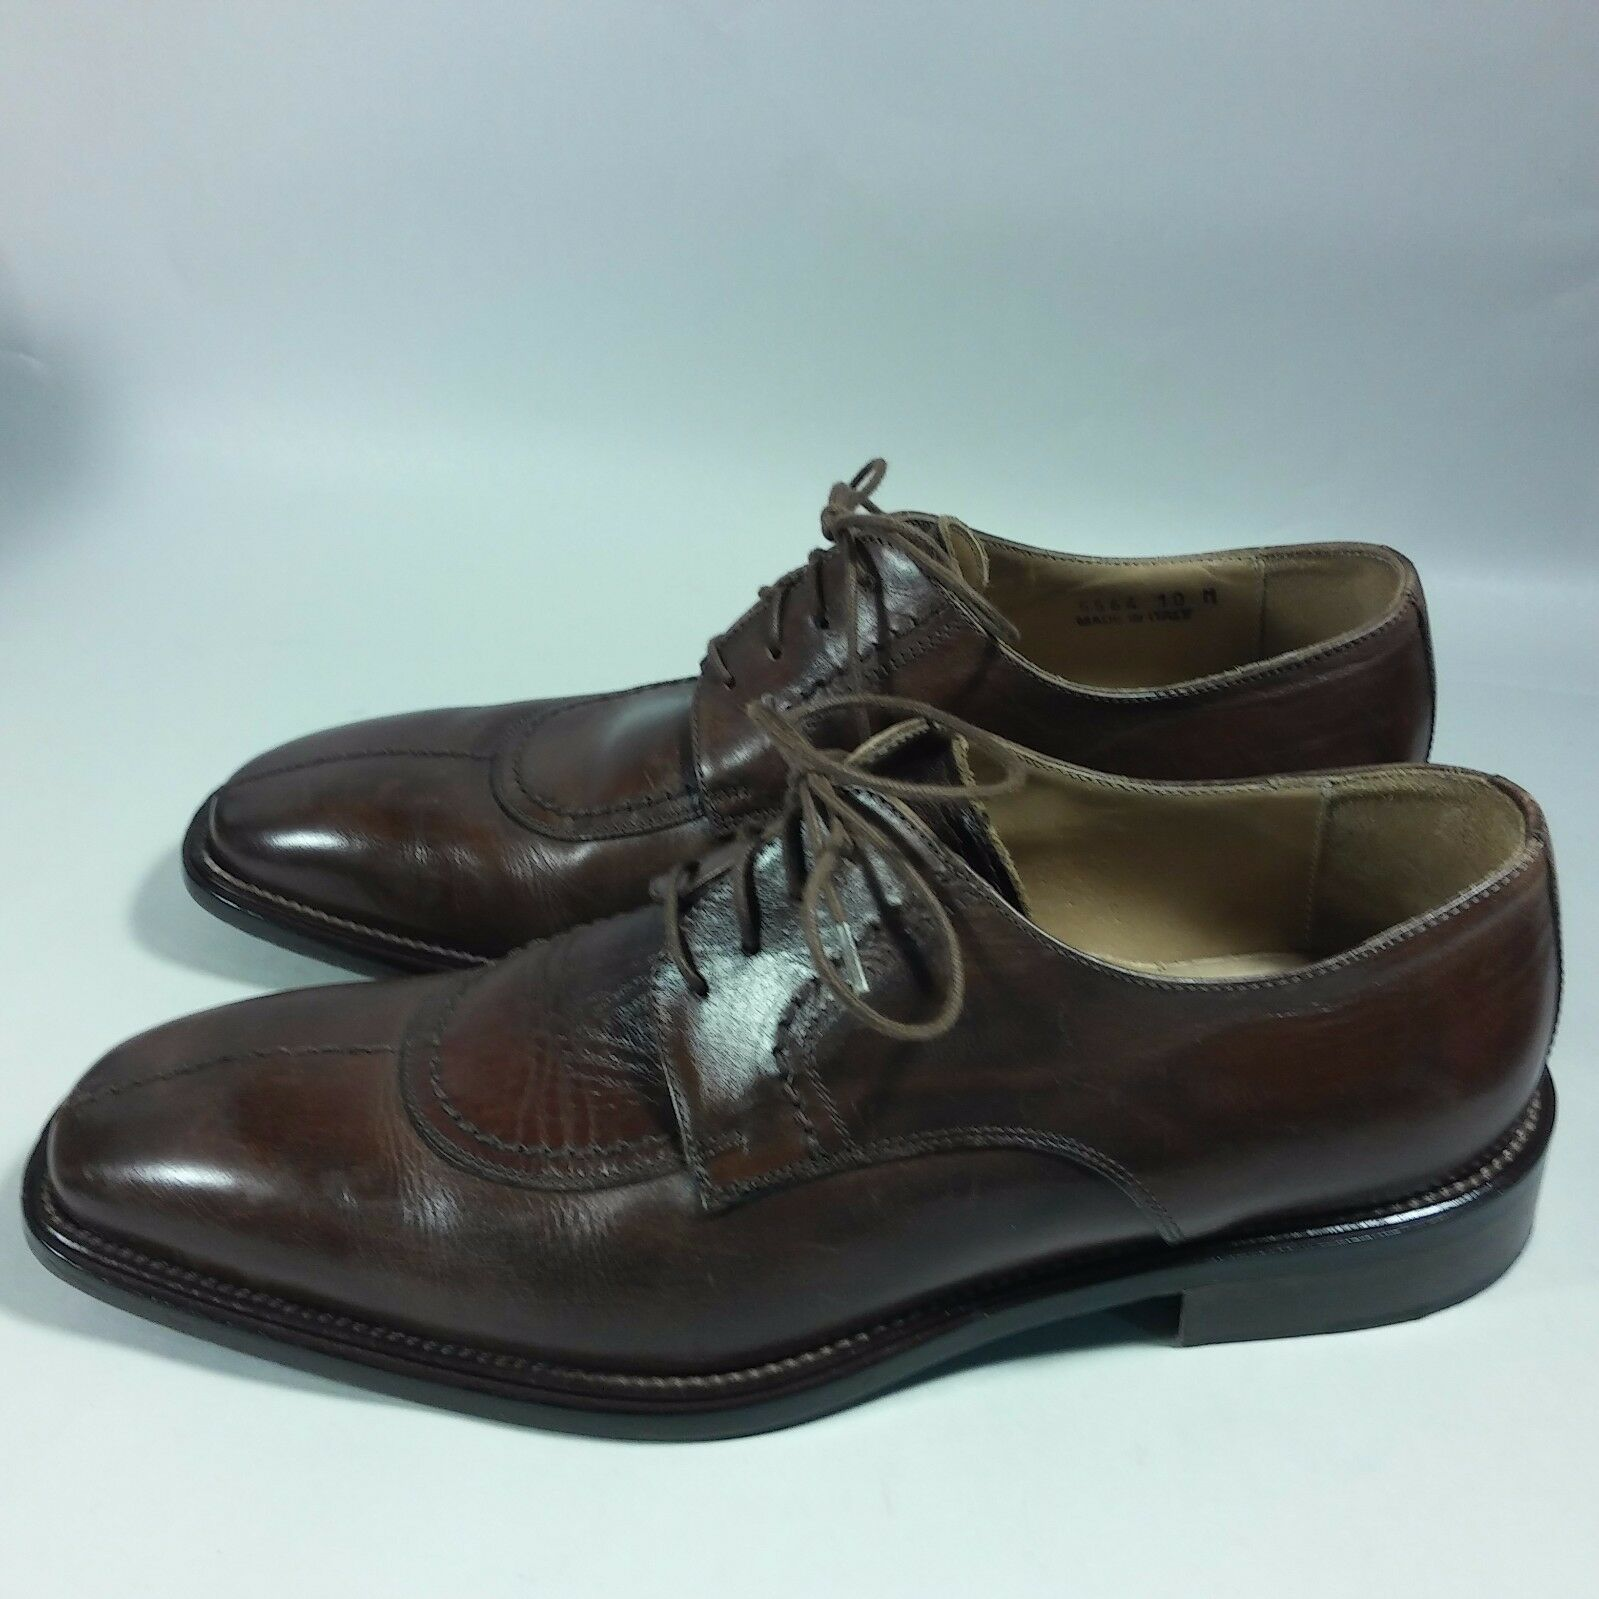 Men's Maximo Mirella shoes Dress Casual Oxfords Brown Leather-MADE IN ITALY-10 M